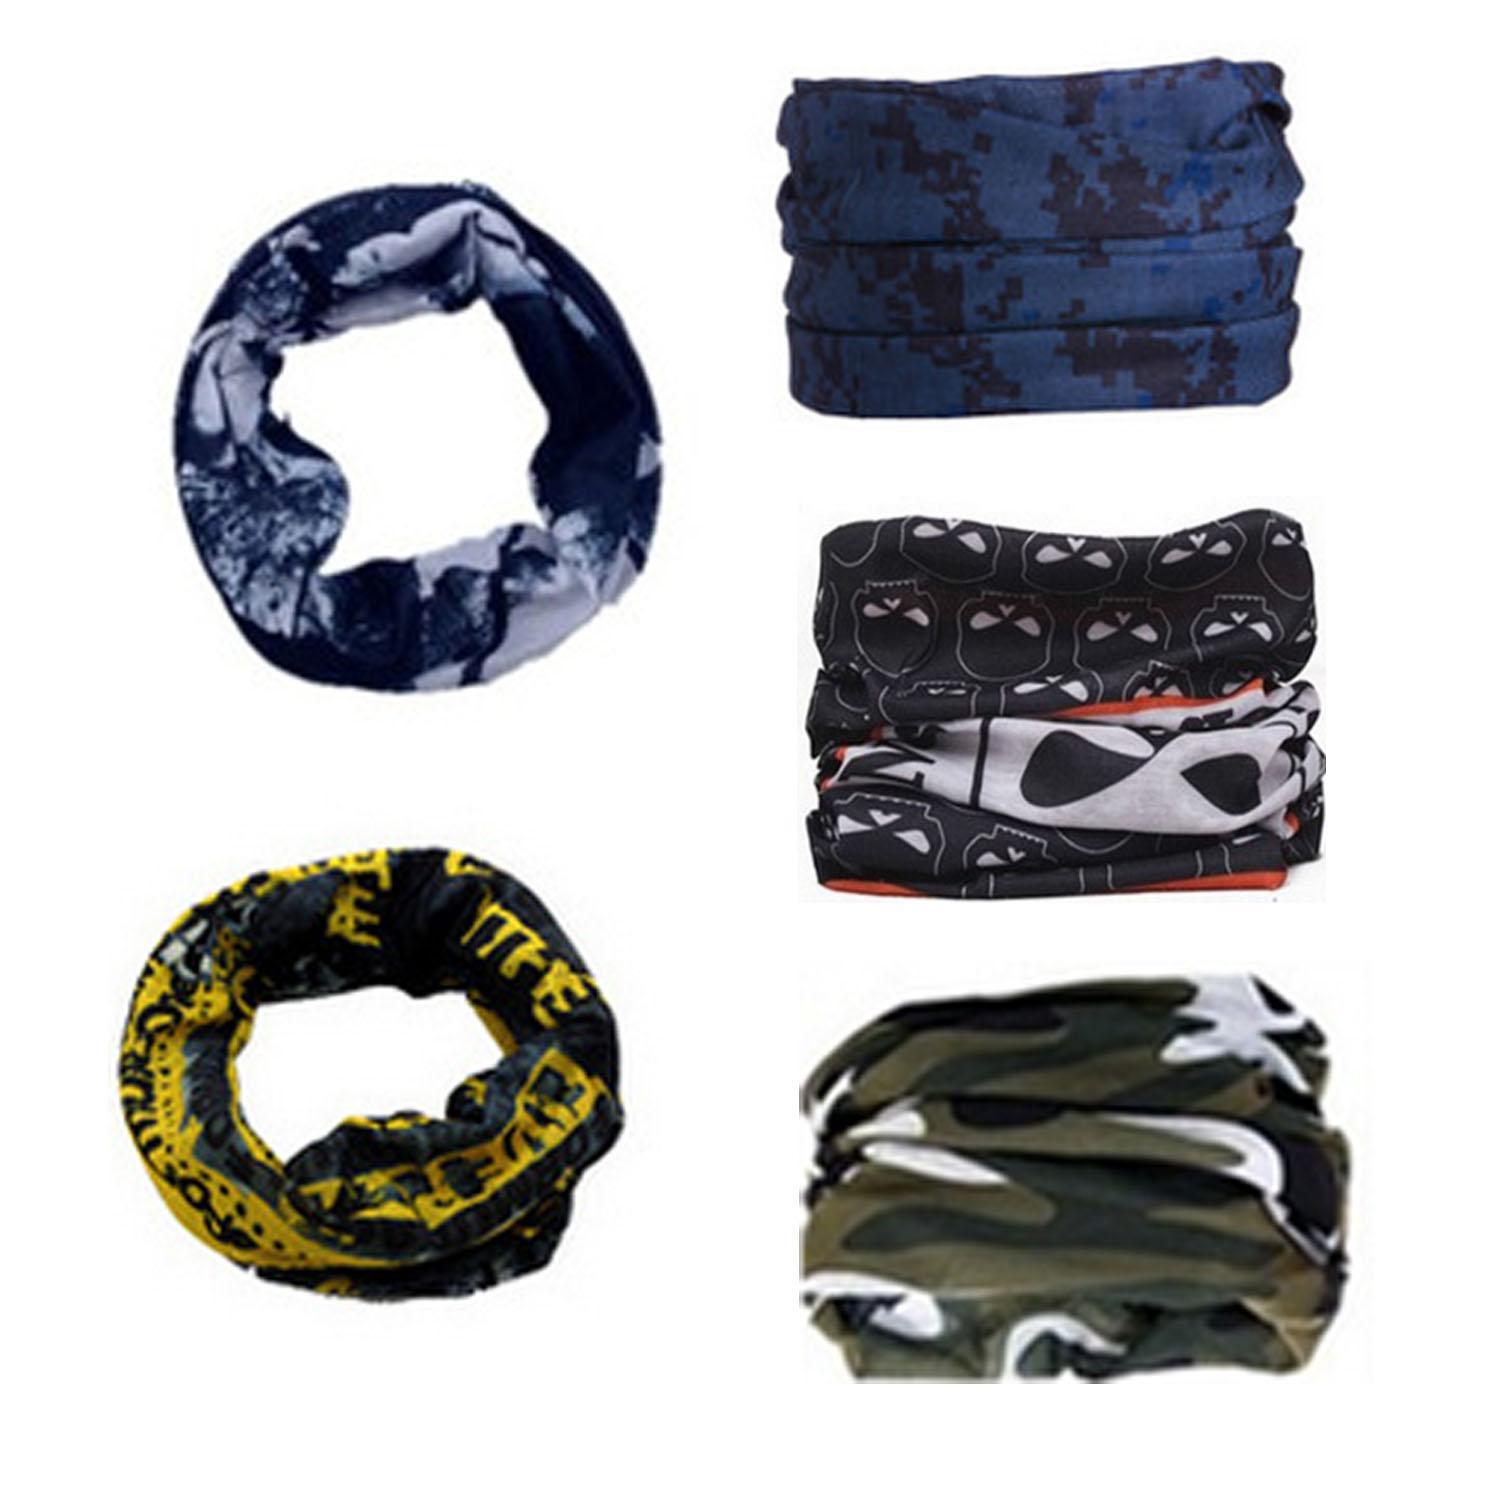 5pcs Multifunctional Headband Sport Magic-Style Headwear Outdoor Bandana Scarf Colorful Series Set A -